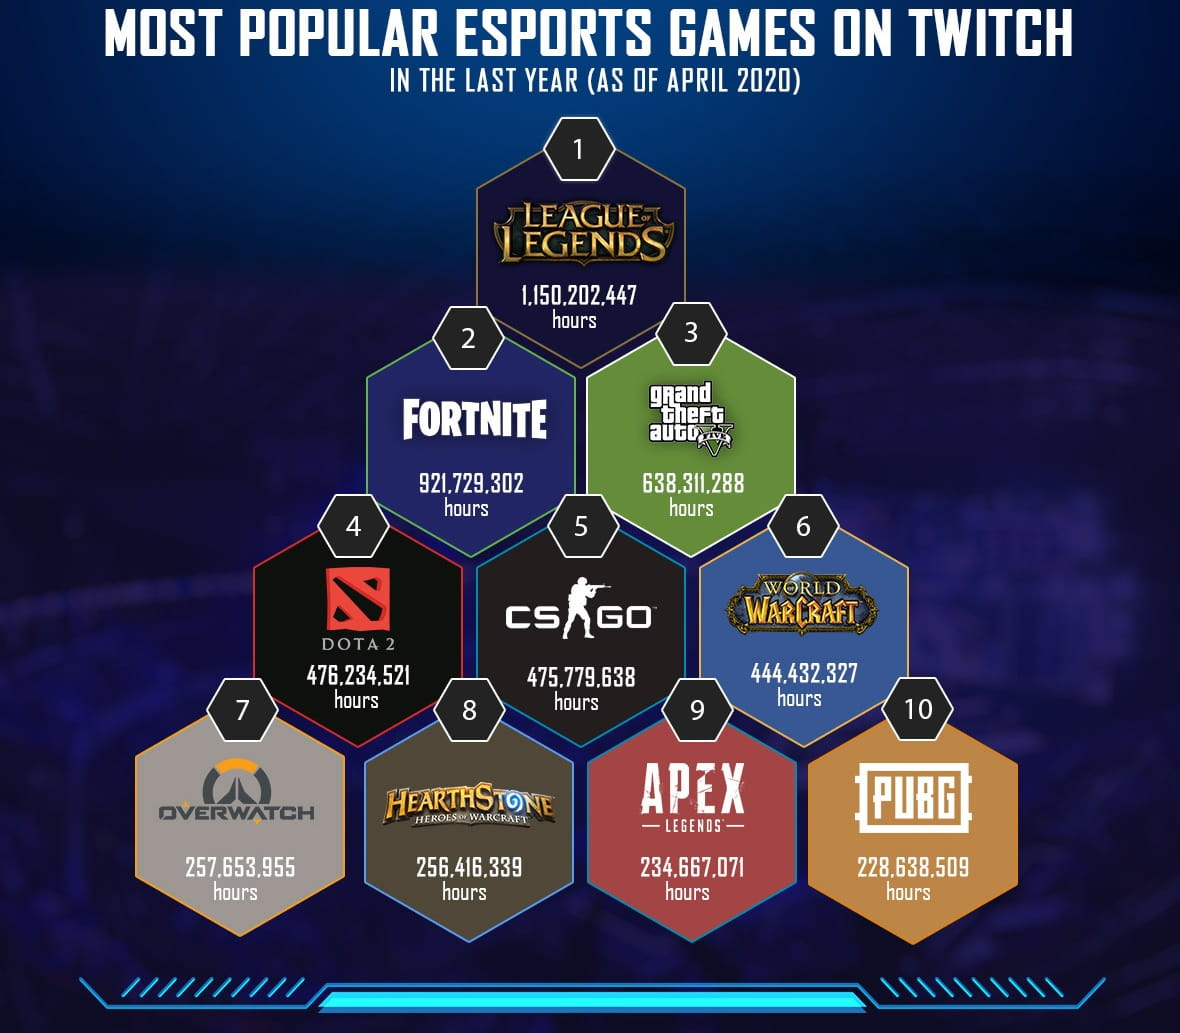 Most Popular eSports Games on Twitch